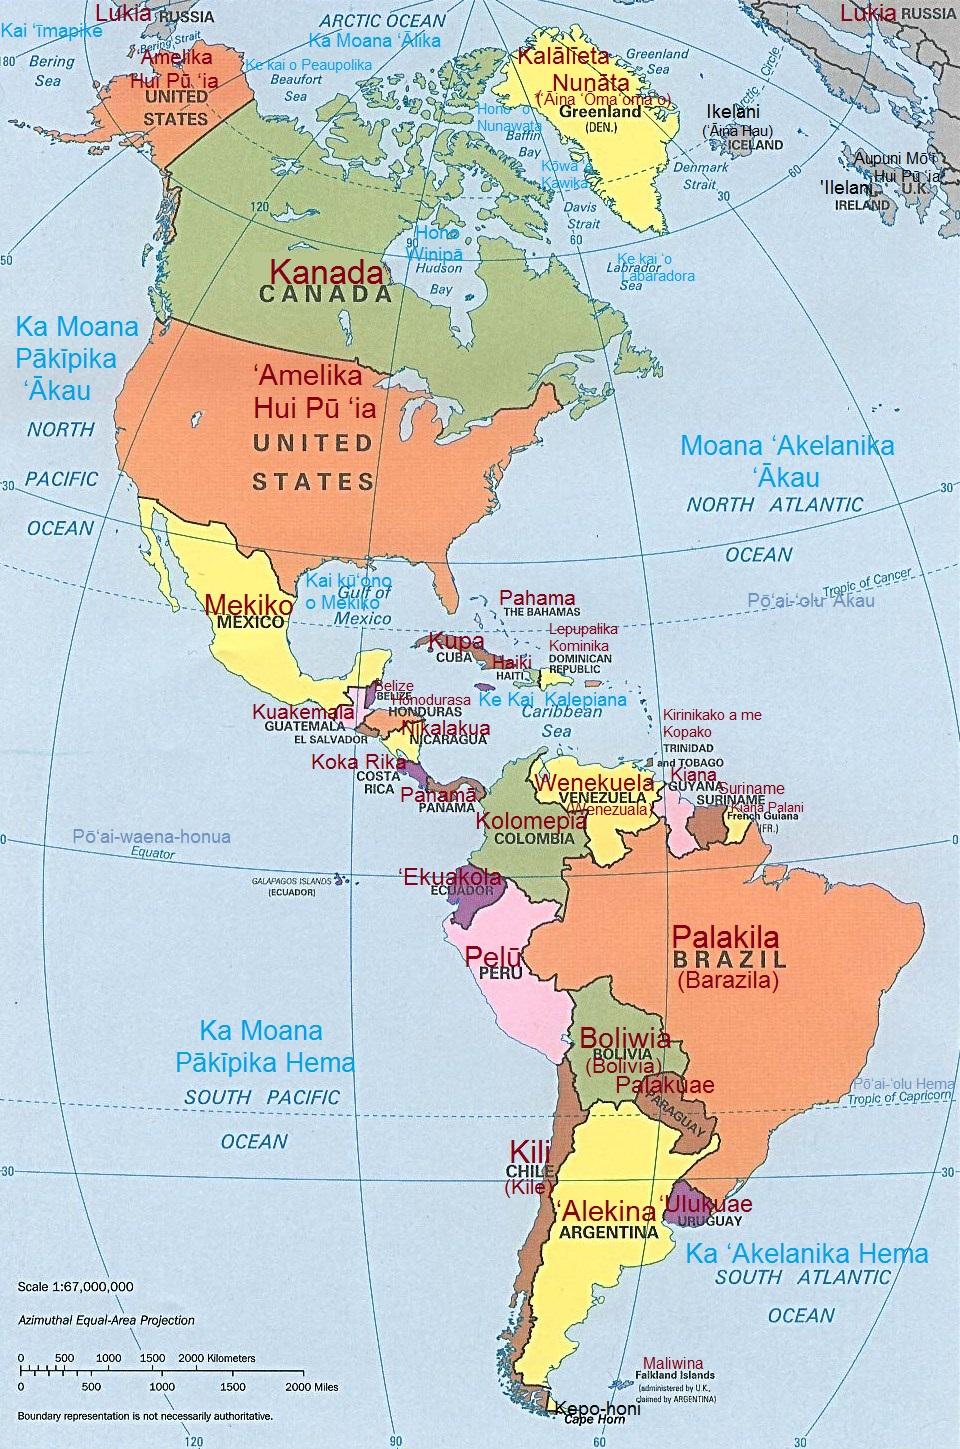 Hawaii On World Map World Maps in Hawaiian – The Decolonial Atlas